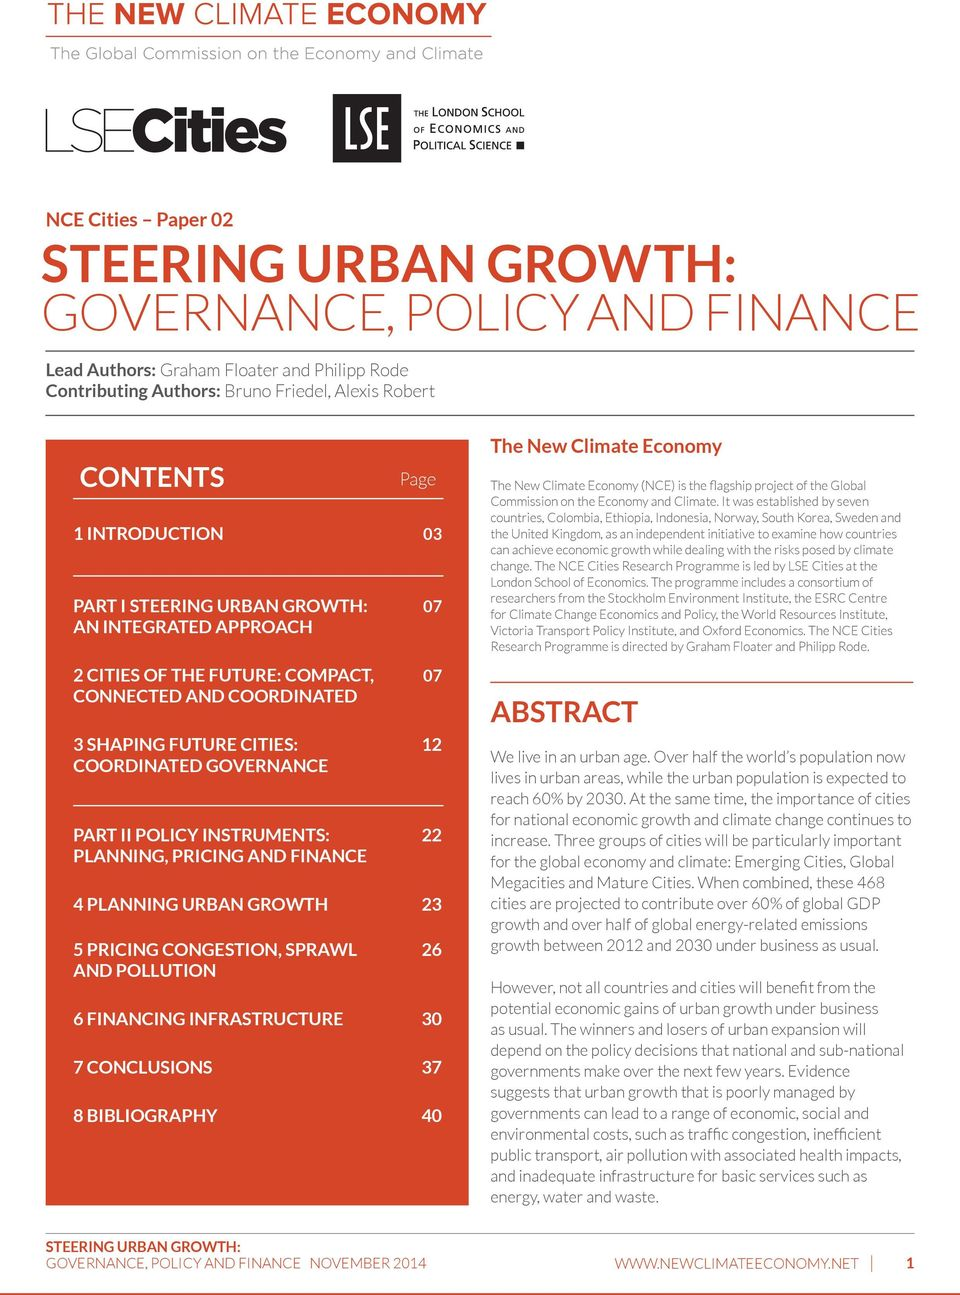 pricing and finance 4 Planning urban growth 23 5 Pricing congestion, sprawl 26 and pollution 6 Financing infrastructure 30 7 ConclusionS 37 8 Bibliography 40 The New Climate Economy The New Climate